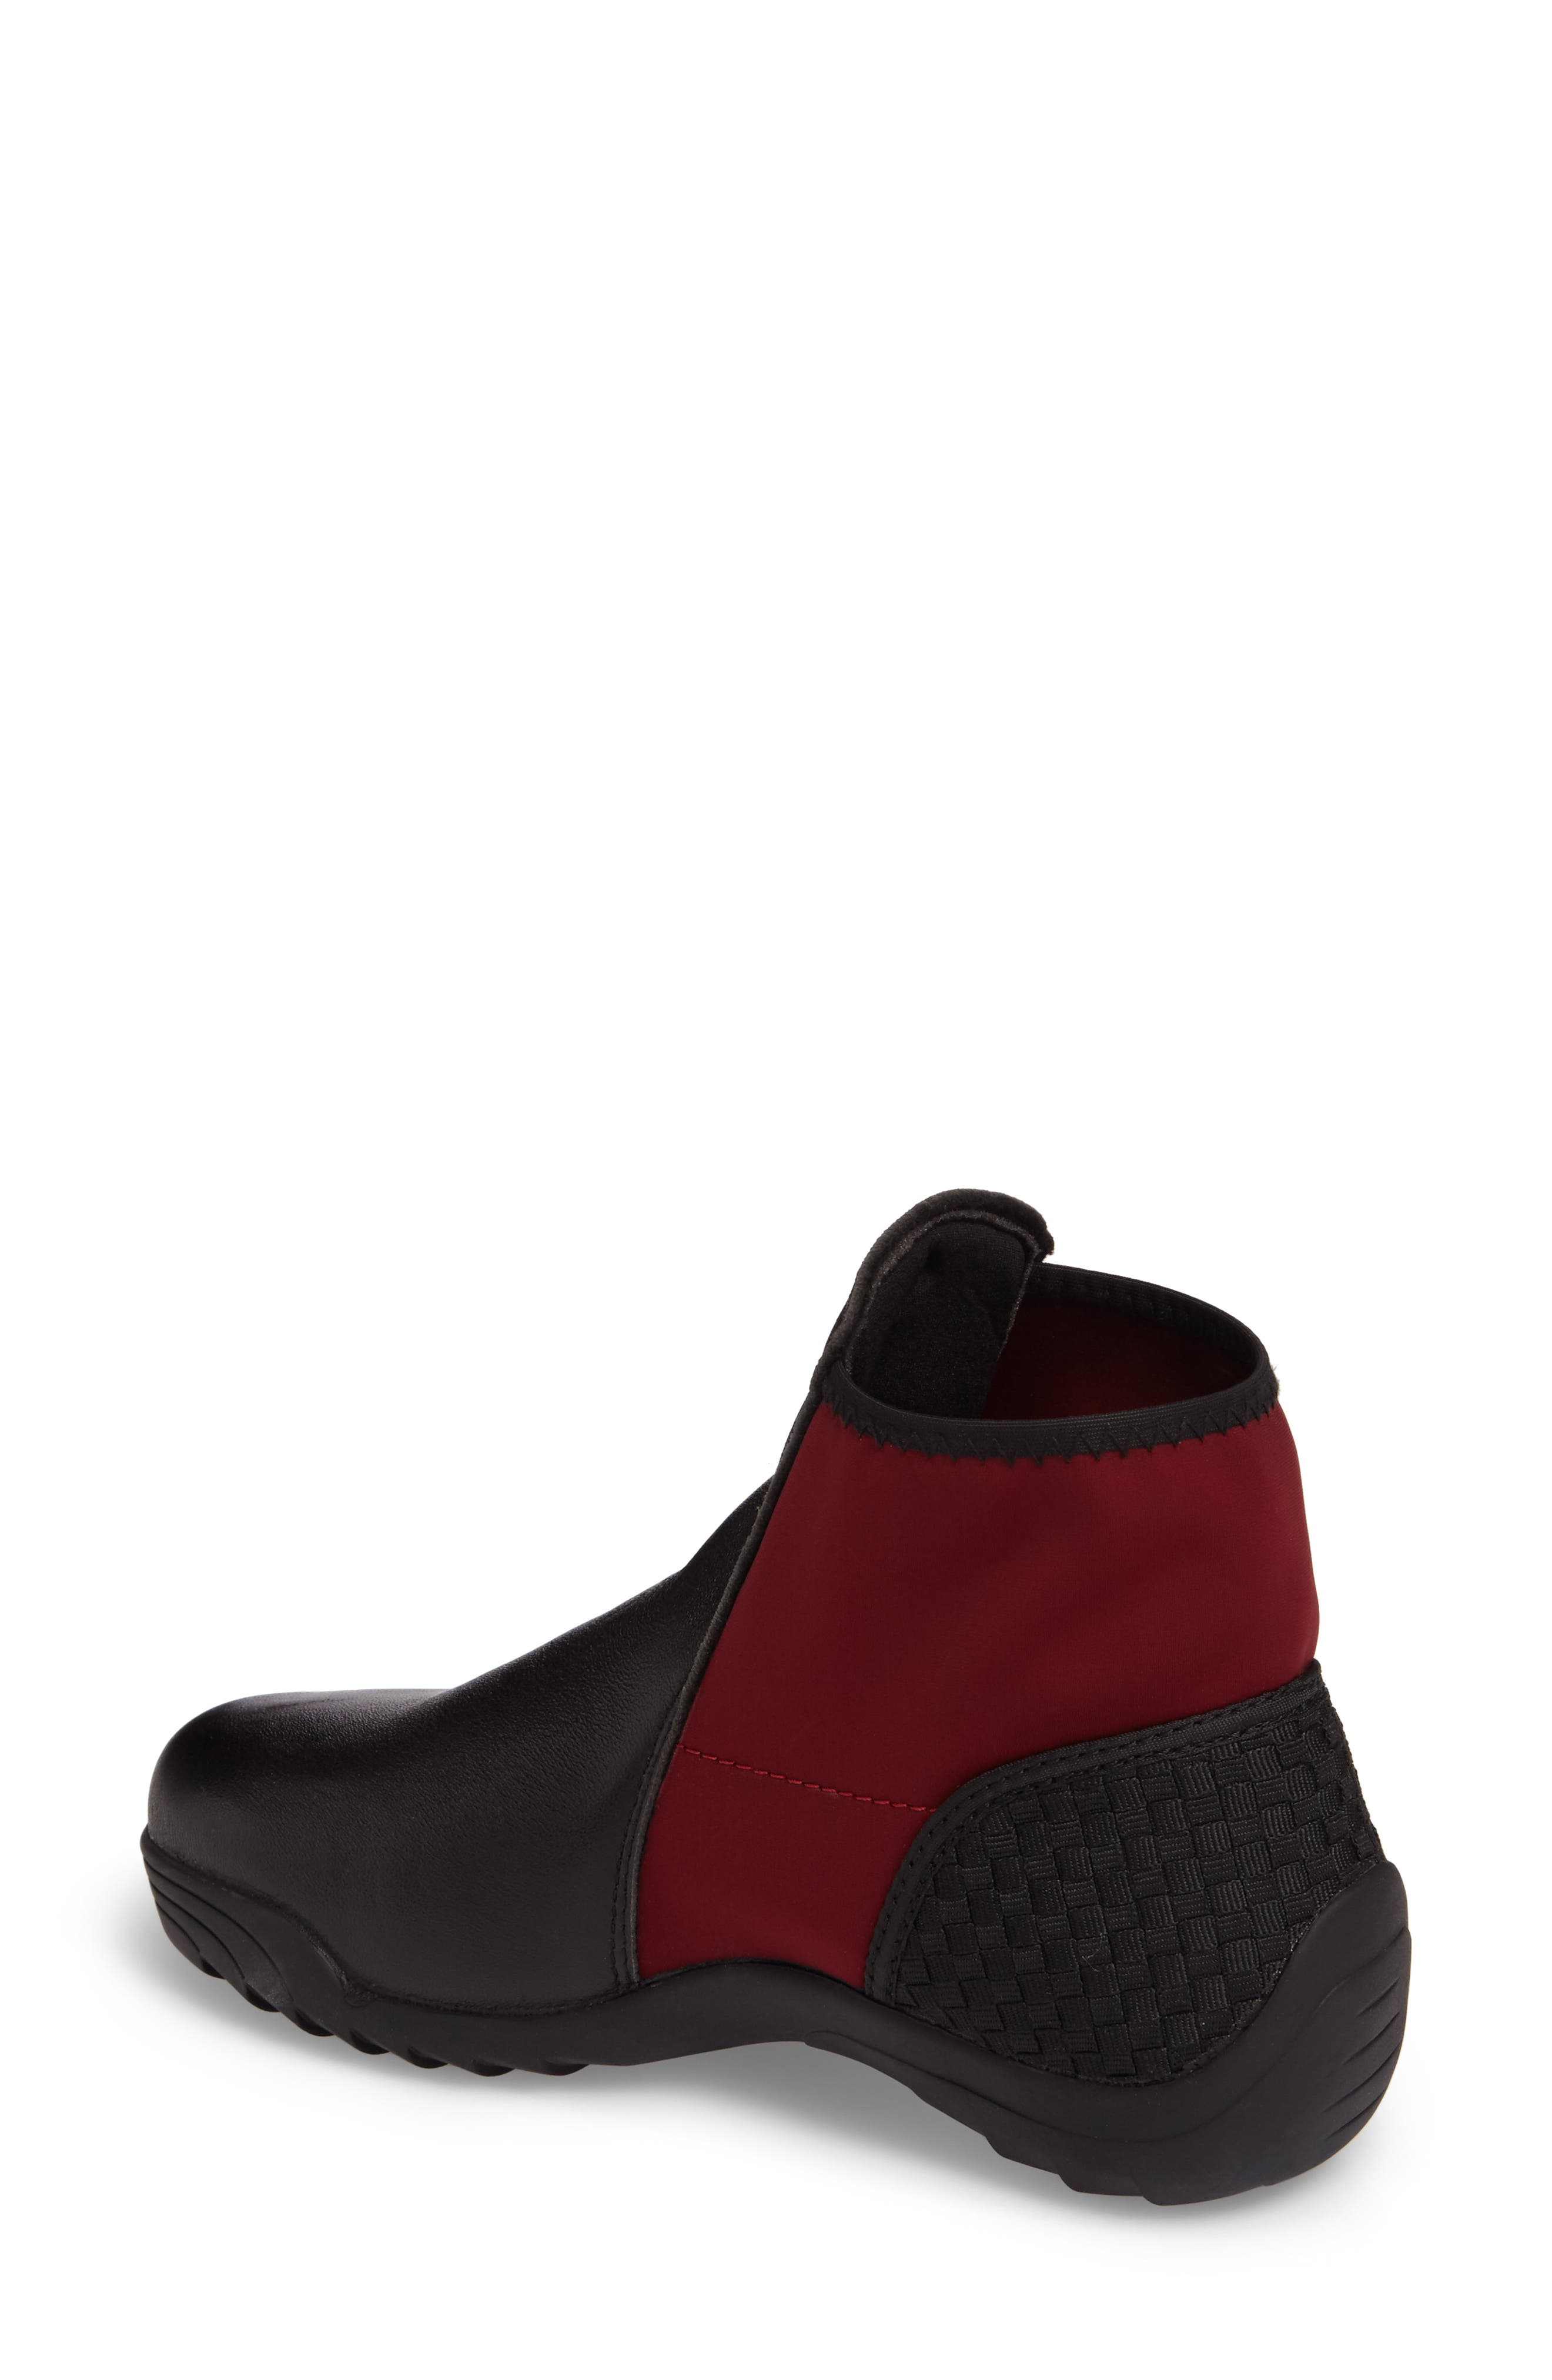 Rigged Force Sneaker,                             Alternate thumbnail 2, color,                             Burgundy Leather